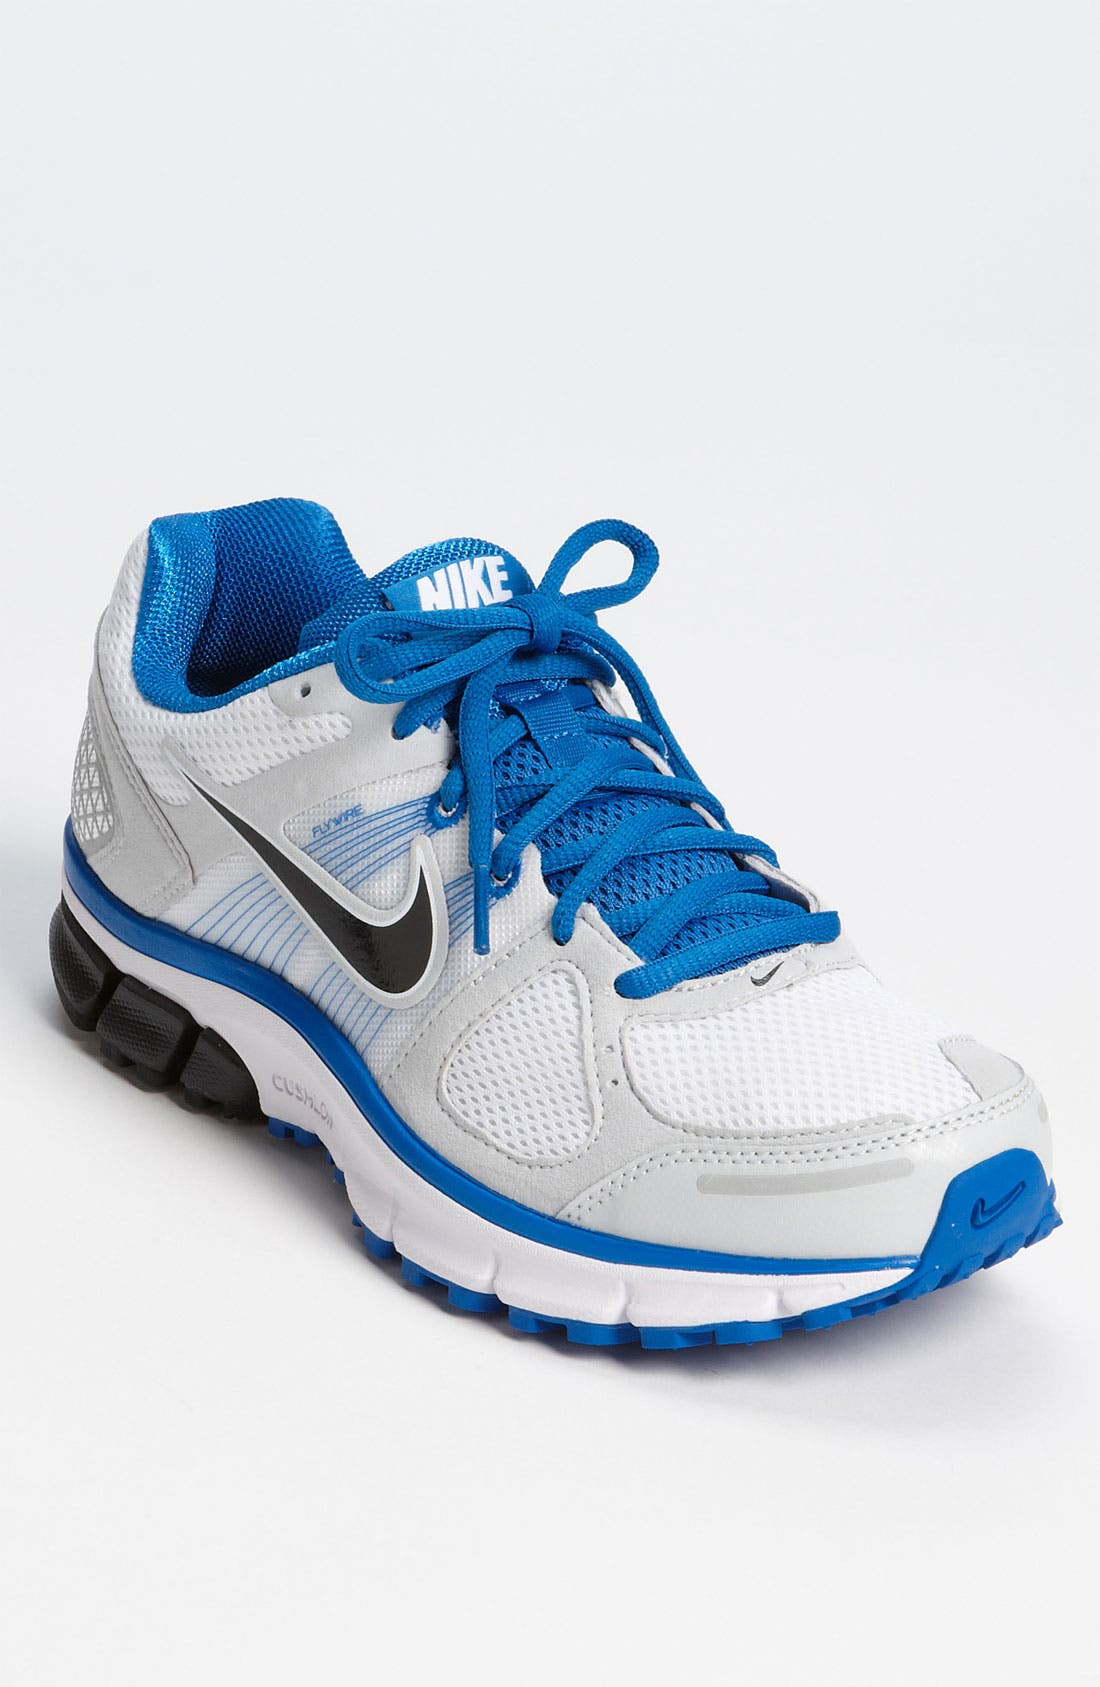 Alternate Image 1 Selected - Nike 'Air Pegasus+ 28' Trail Running Shoe (Men)